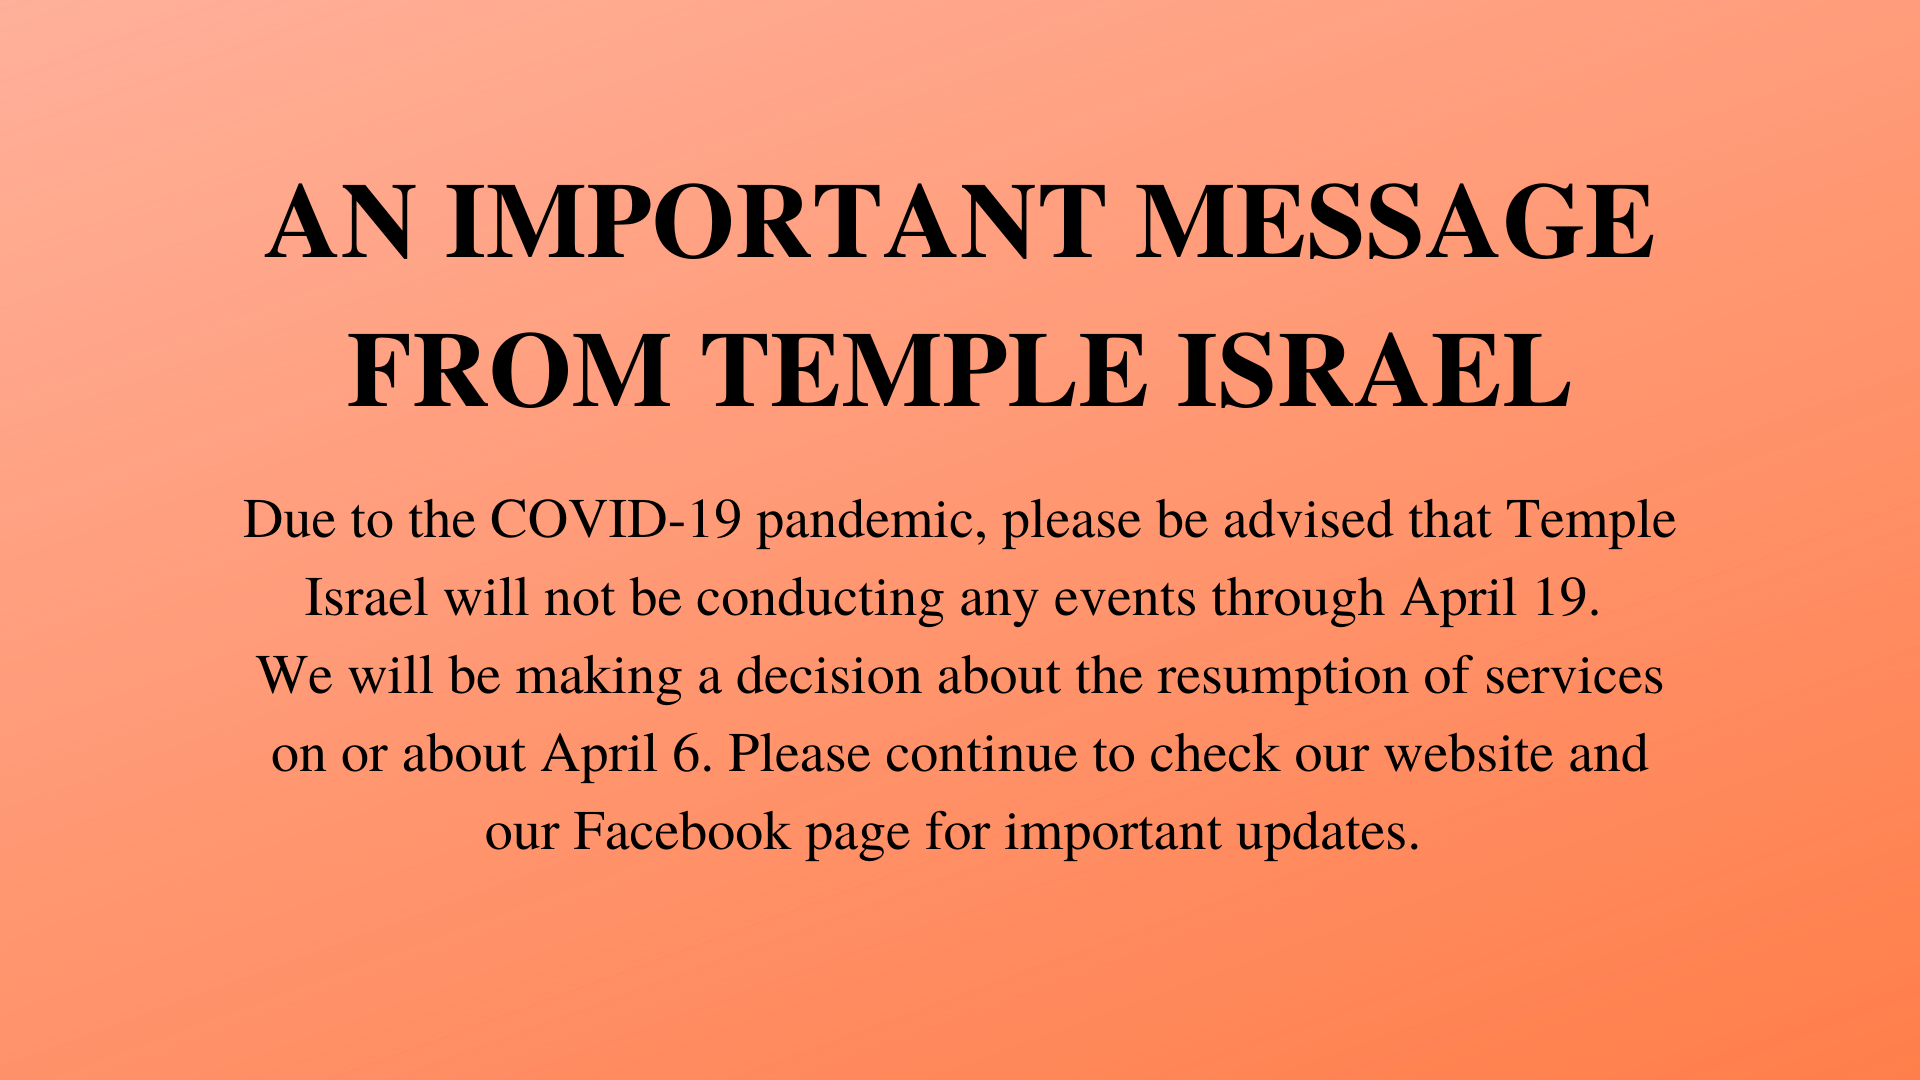 An Important Message From Temple Israel